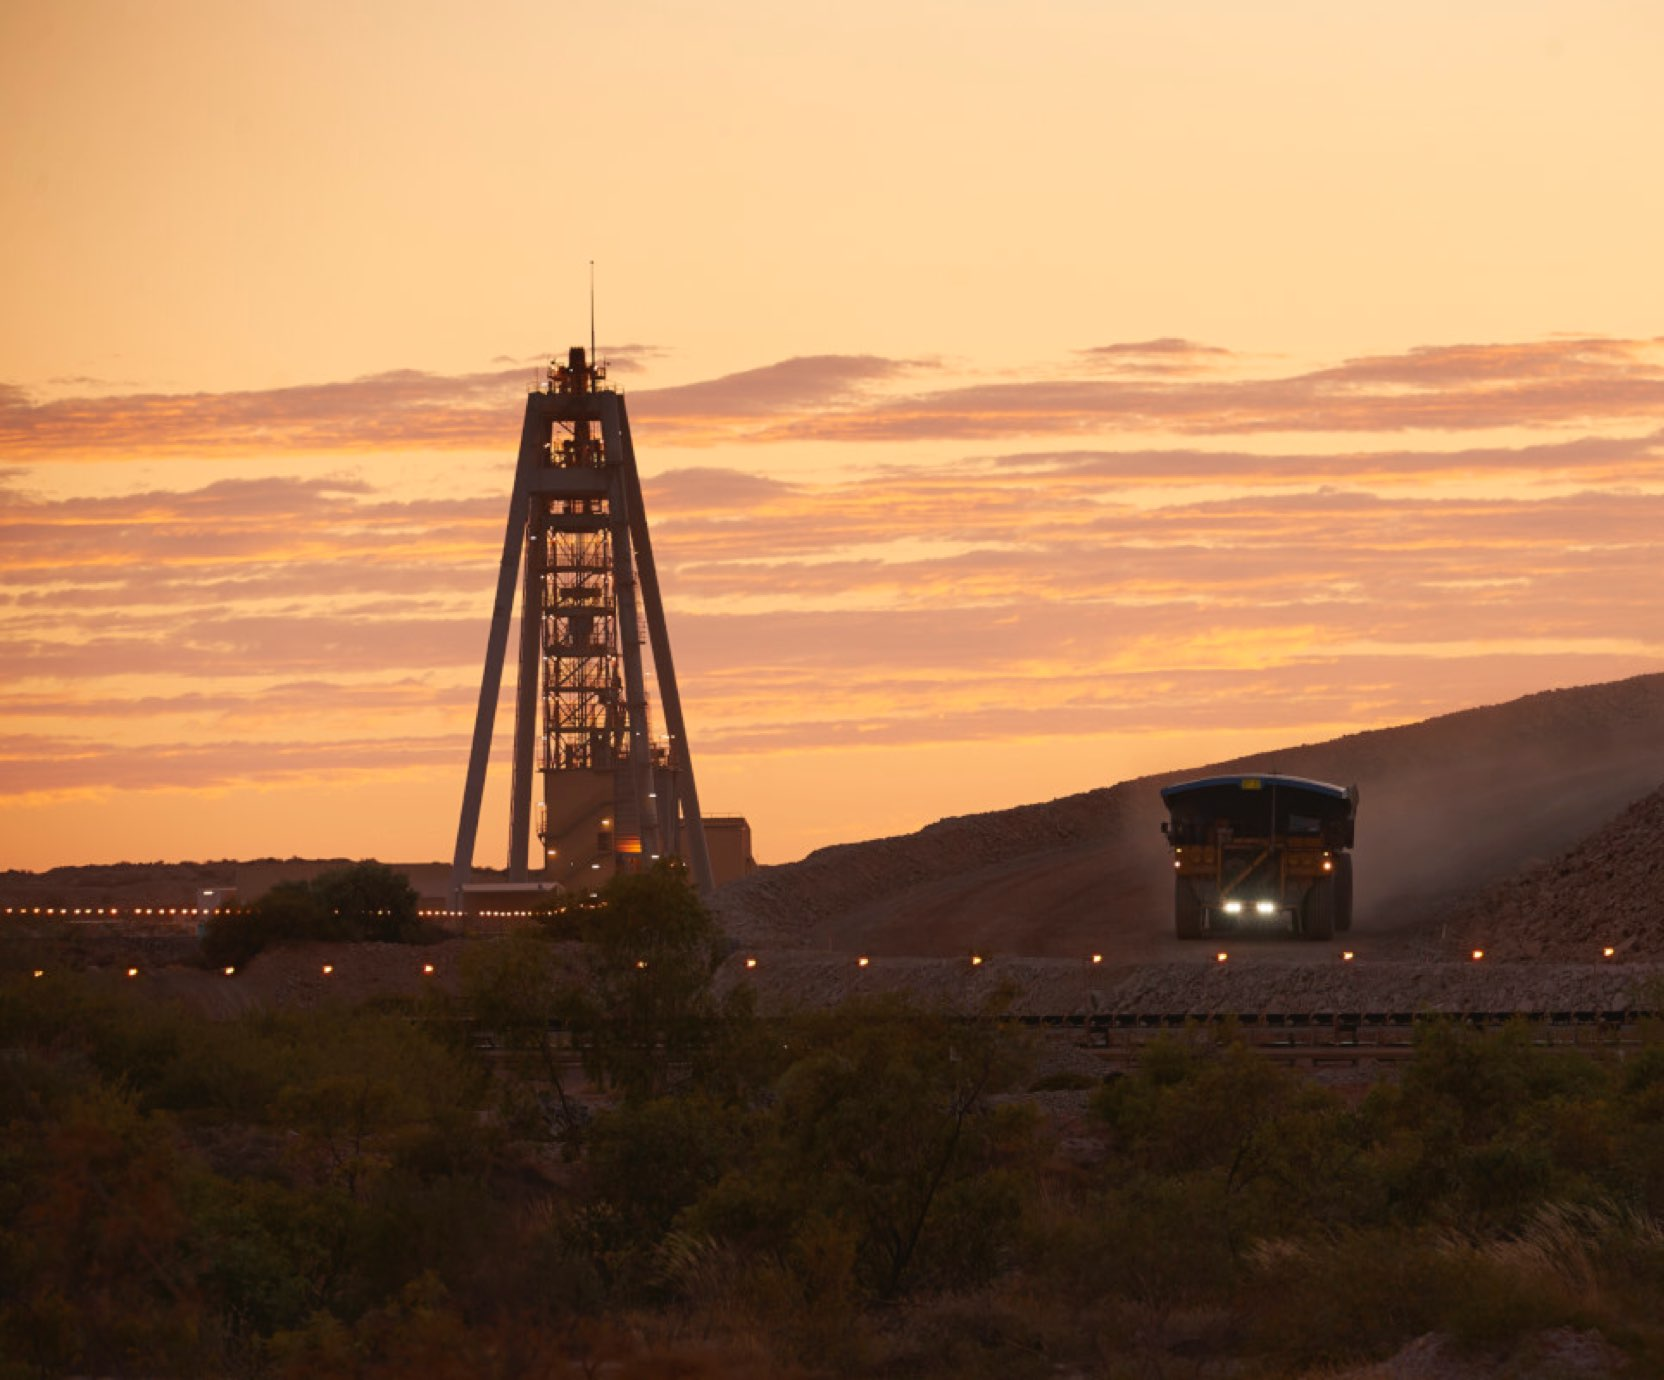 Telfer mines at dawn